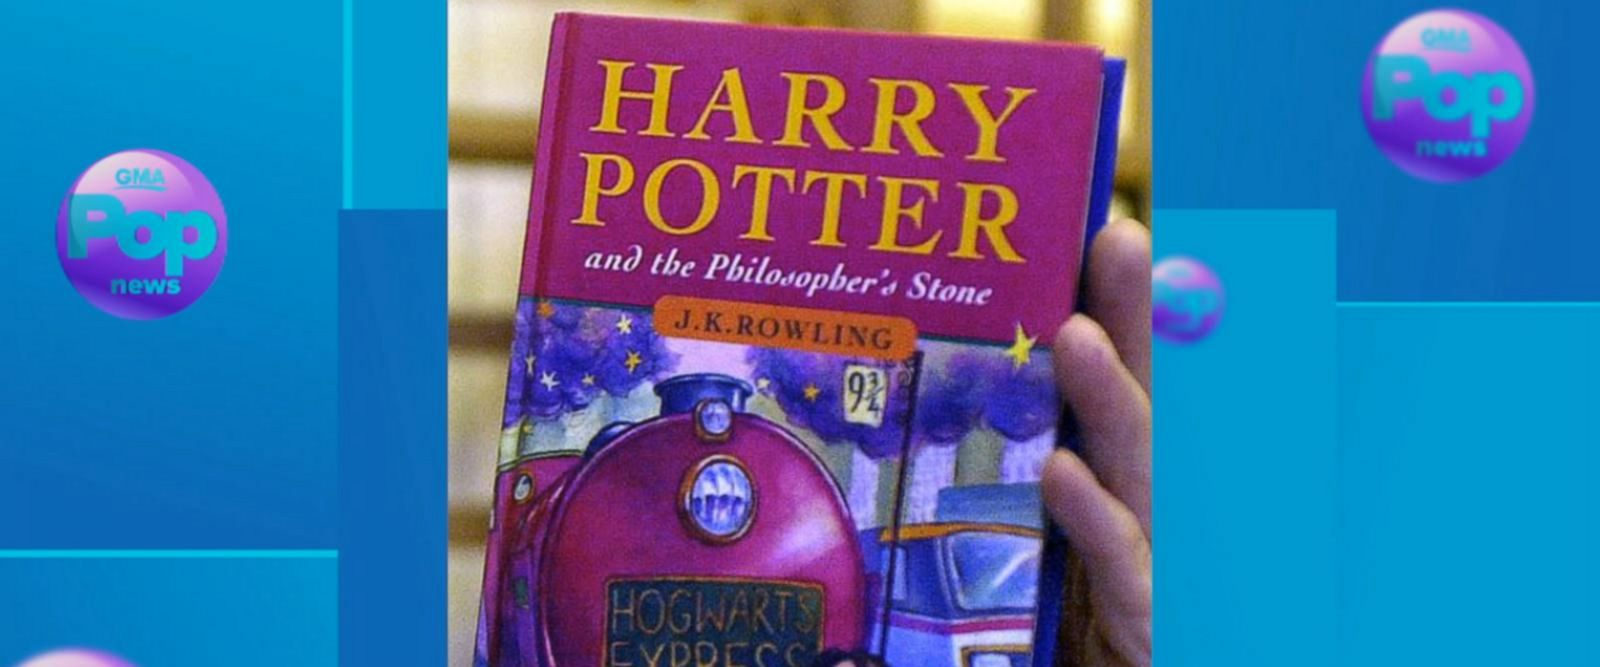 VIDEO: JK Rowling thanks fans on 'Harry Potter' 20th anniversary